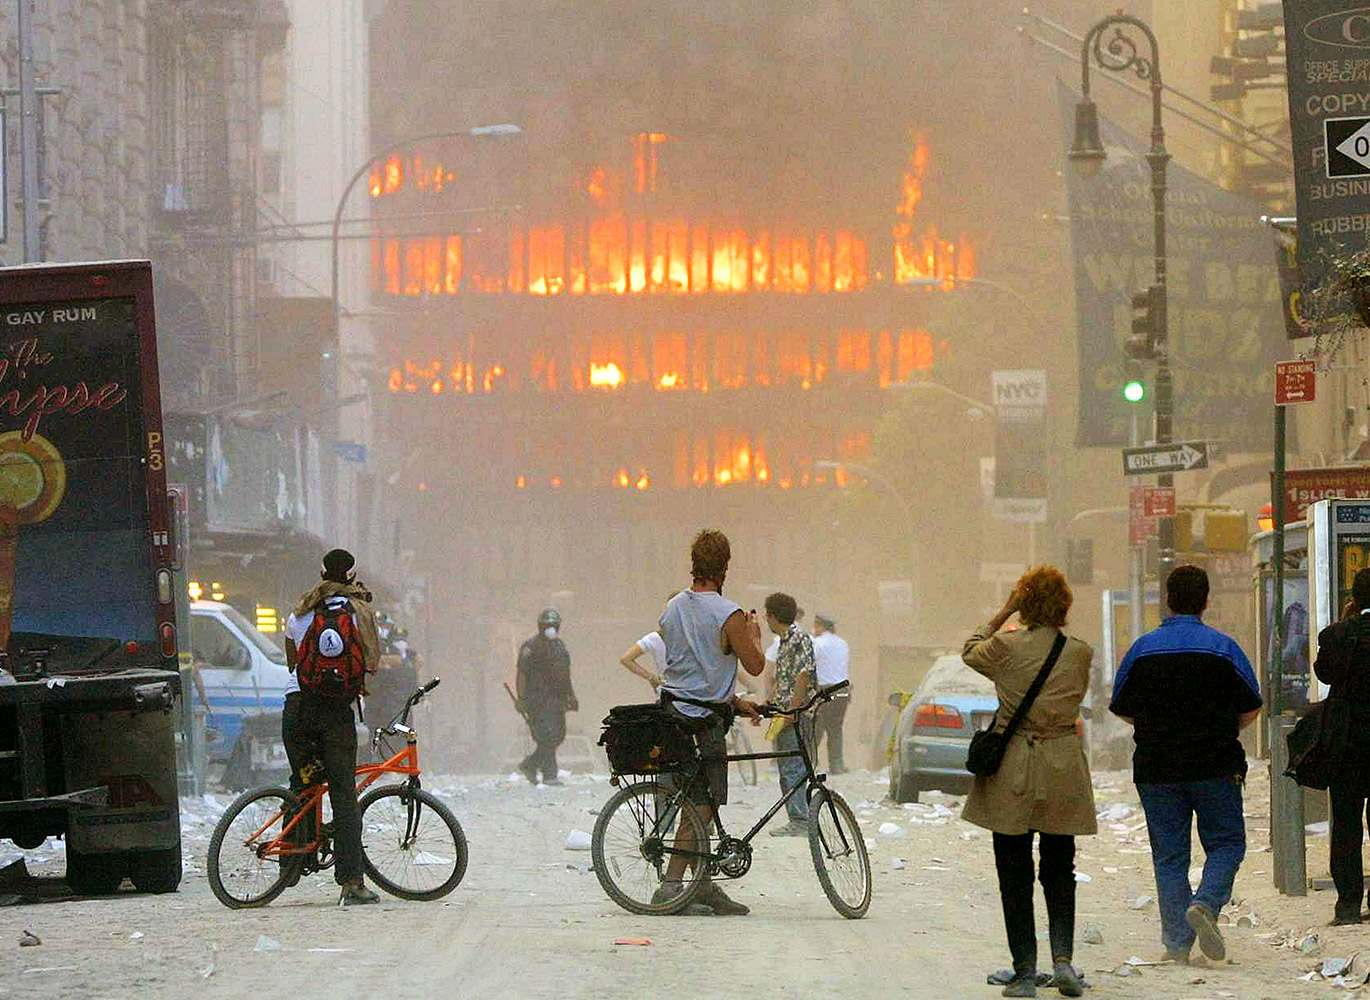 famous-images-from-september-11-terrorist-attacks-03.jpg